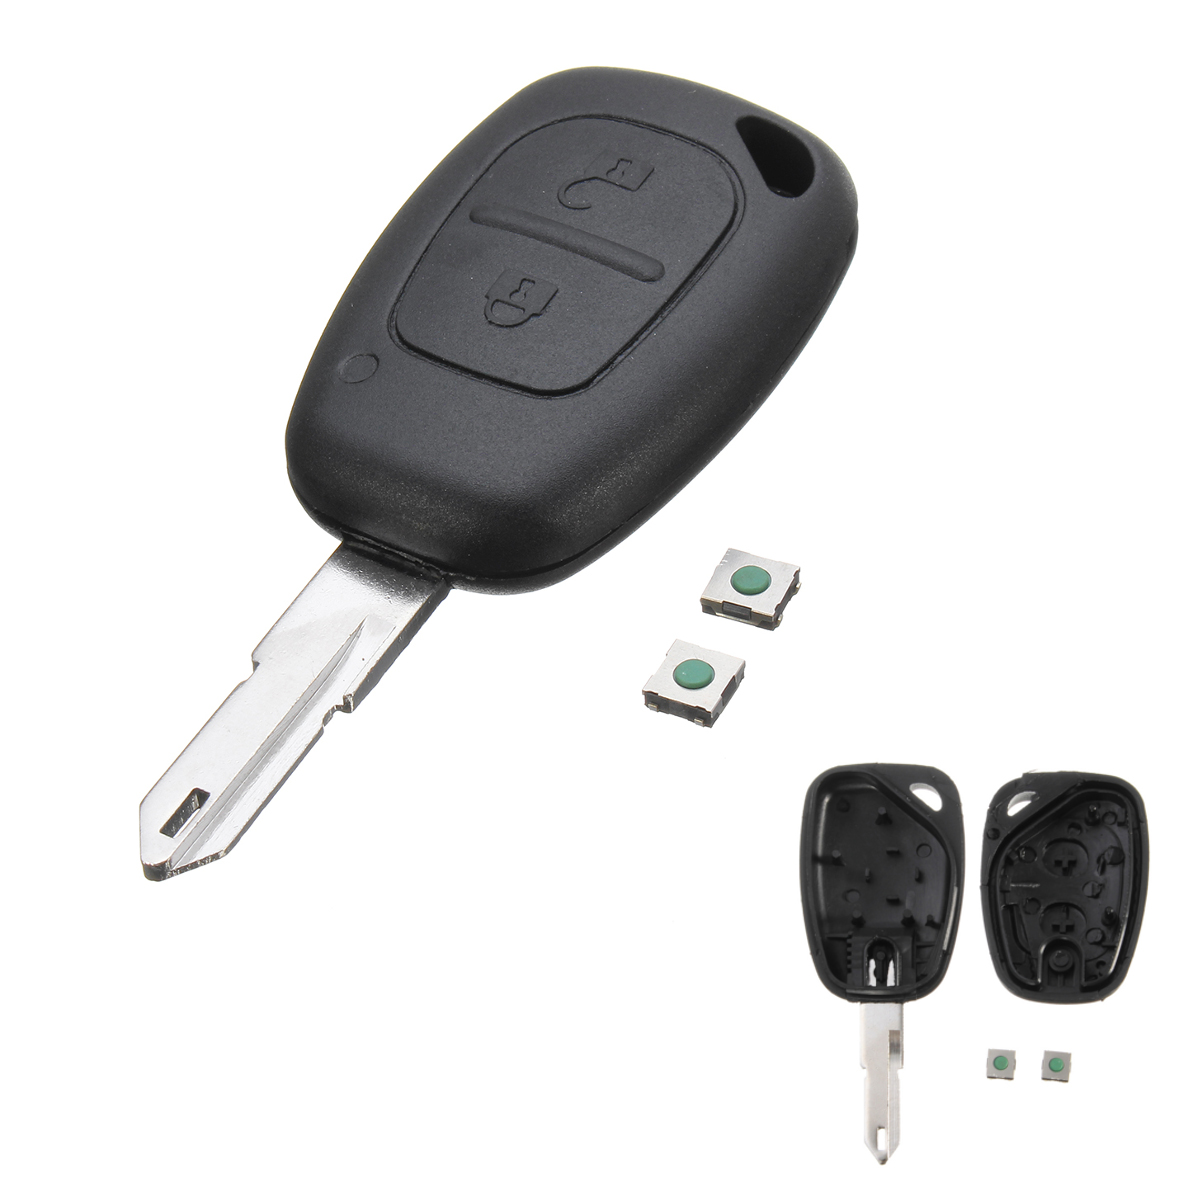 SCITOO 1PC Keyless Entry Remote Control Car Key Fob Shell Case 4 Buttons Replacement fit Mazda 3 6 Series 13-2017 SKE13D-01